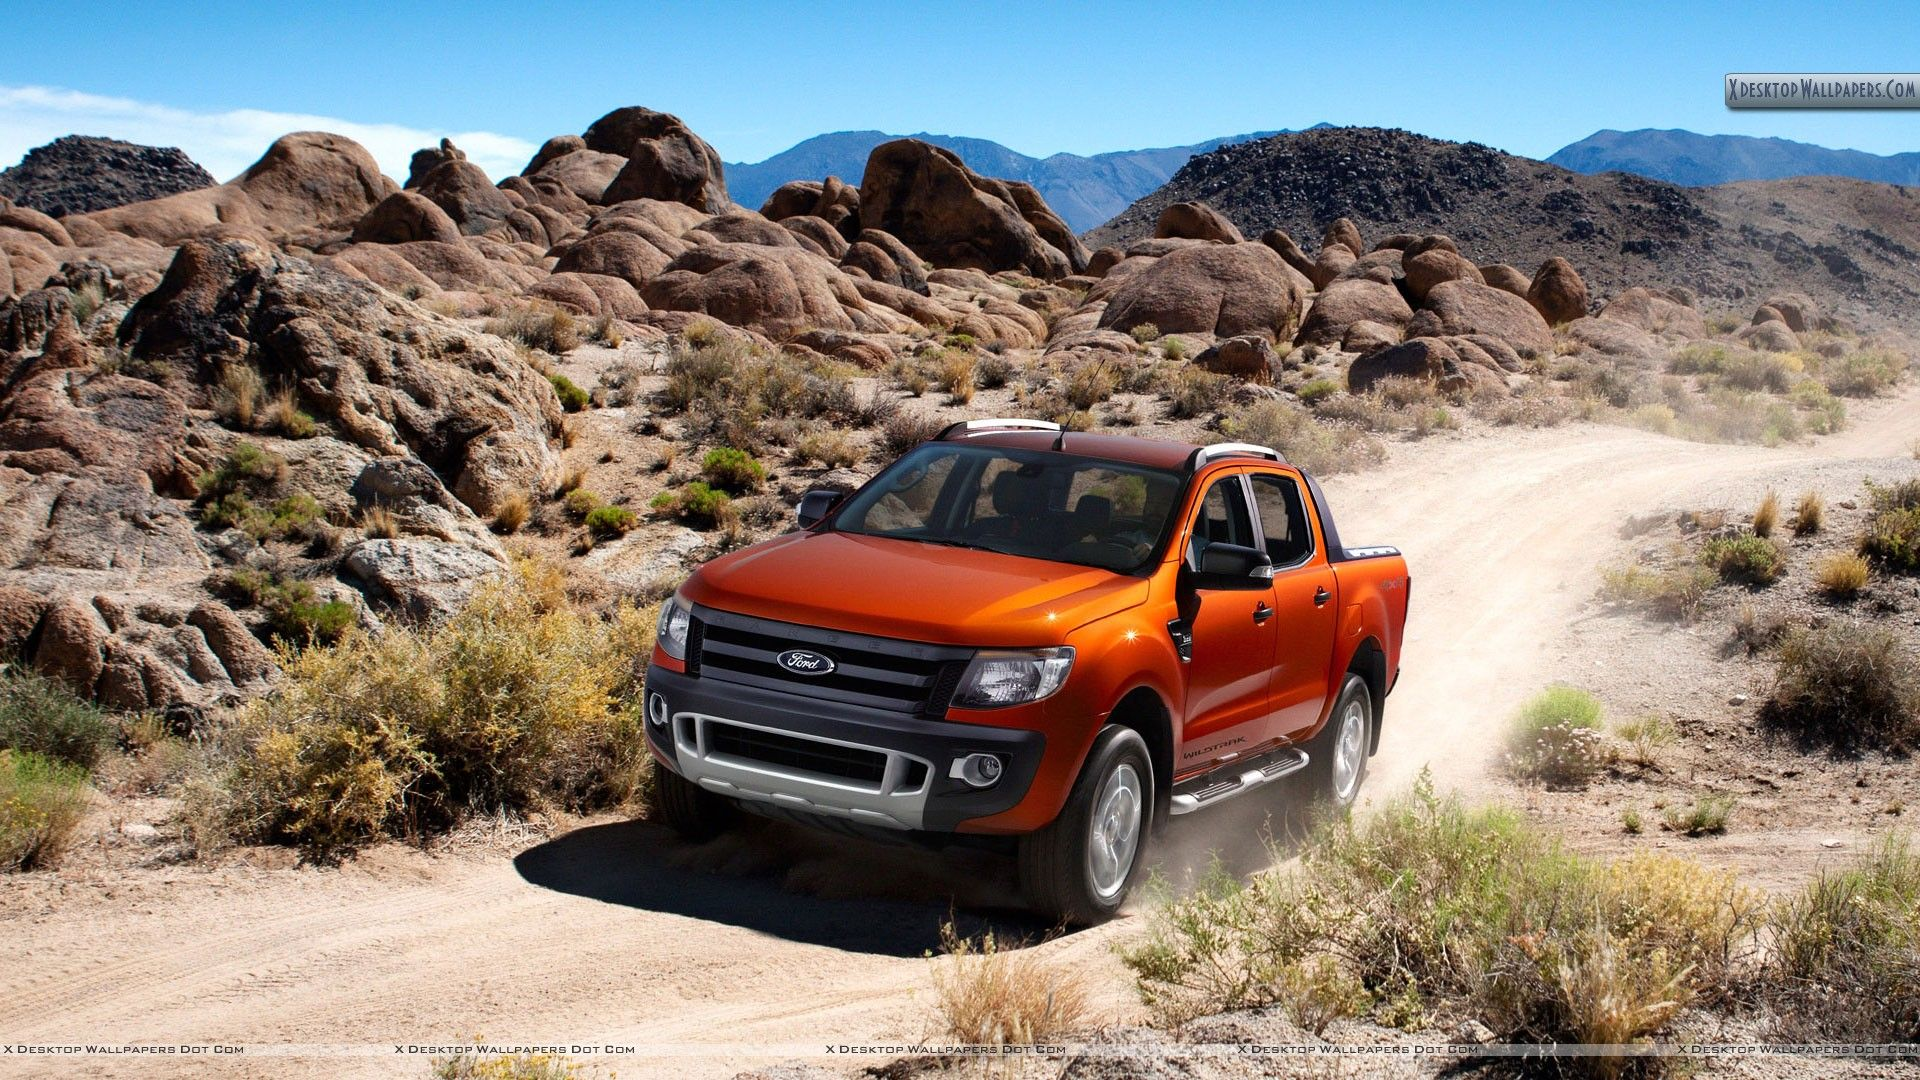 Ford Ranger Wallpapers - GanZHenjuN.com